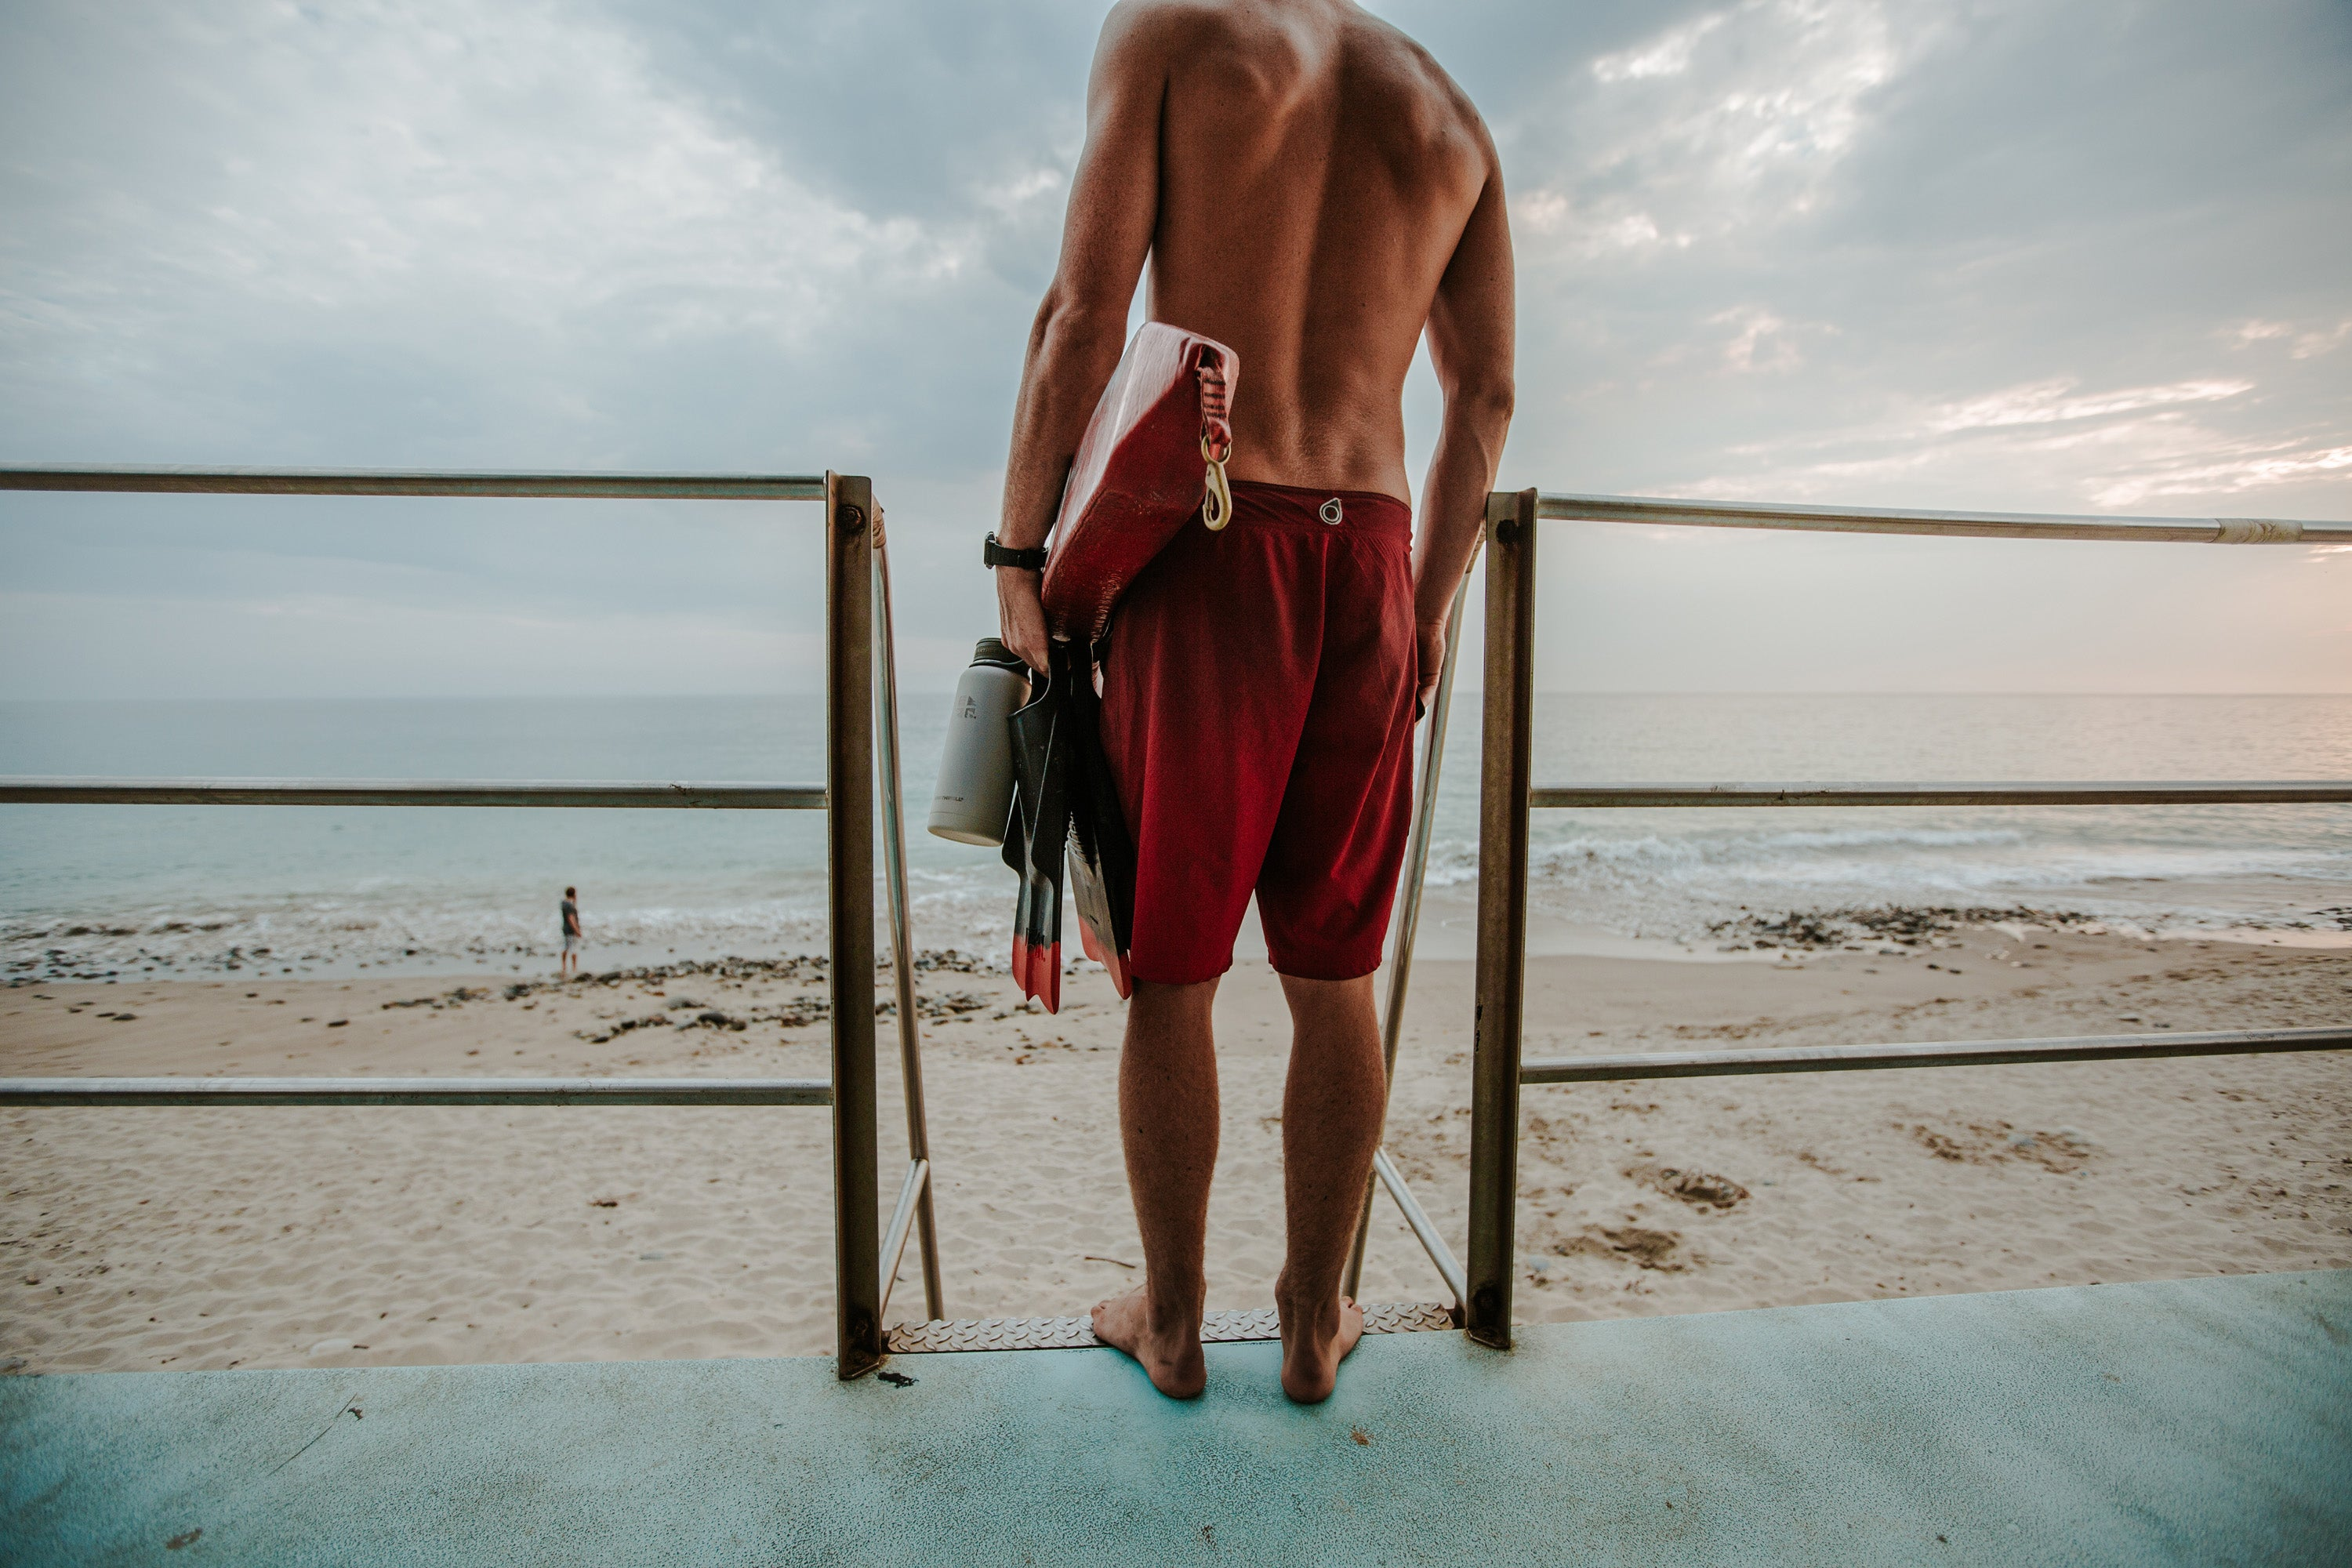 Man standing on beach holding a surf board and an Earthwell Kewler Insulated Water bottle - designed to keep your cold drinks cold for when surfs up.